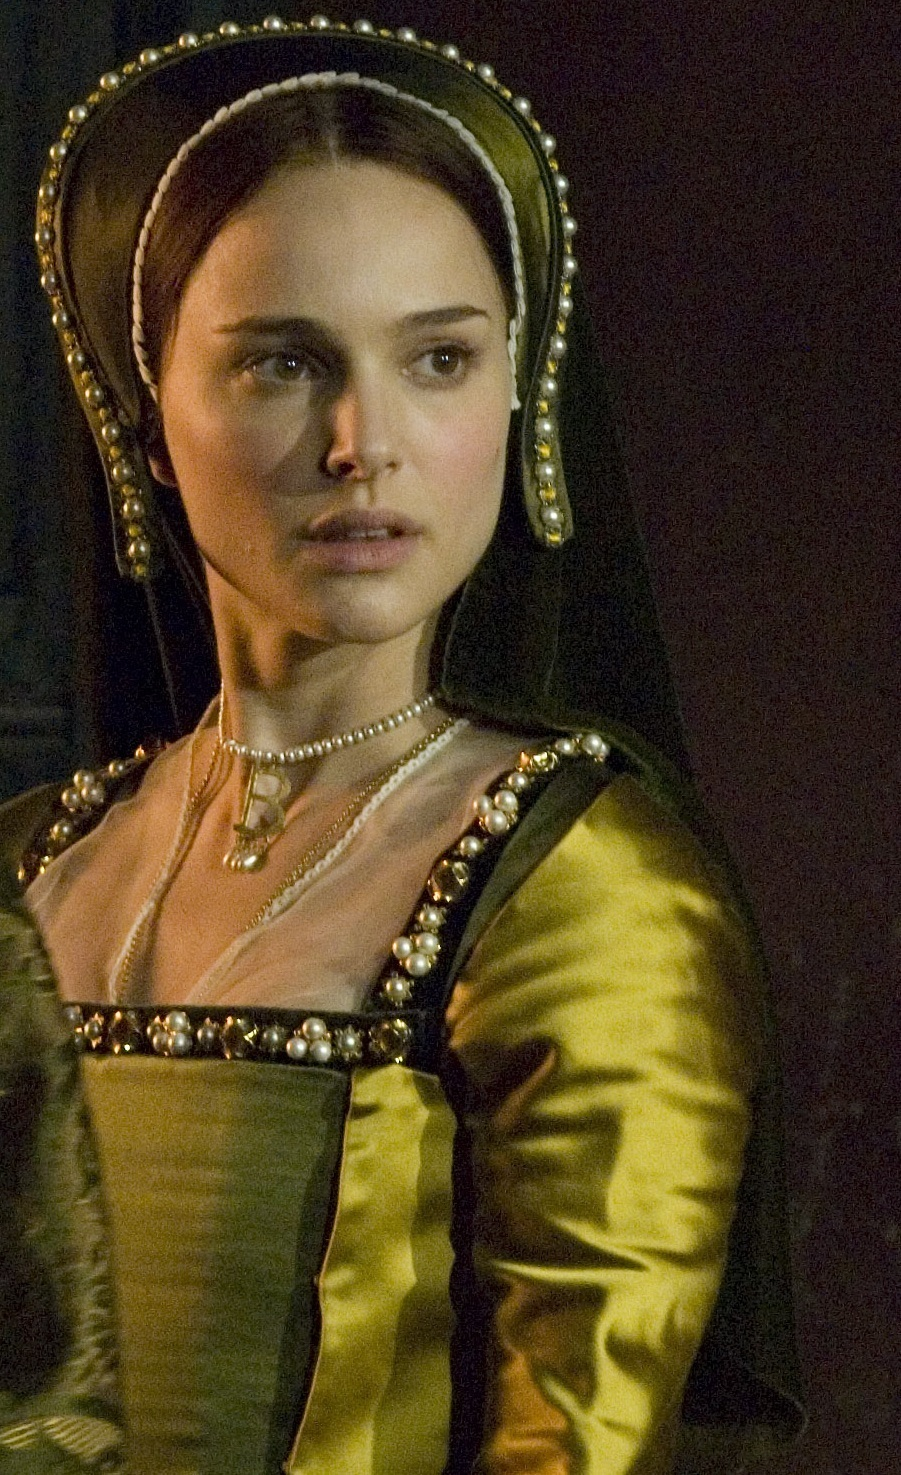 The Other Boleyn Girl Hd Wallpaper Anne Boleyn Images Anne Boleyn Hd Wallpaper And Background